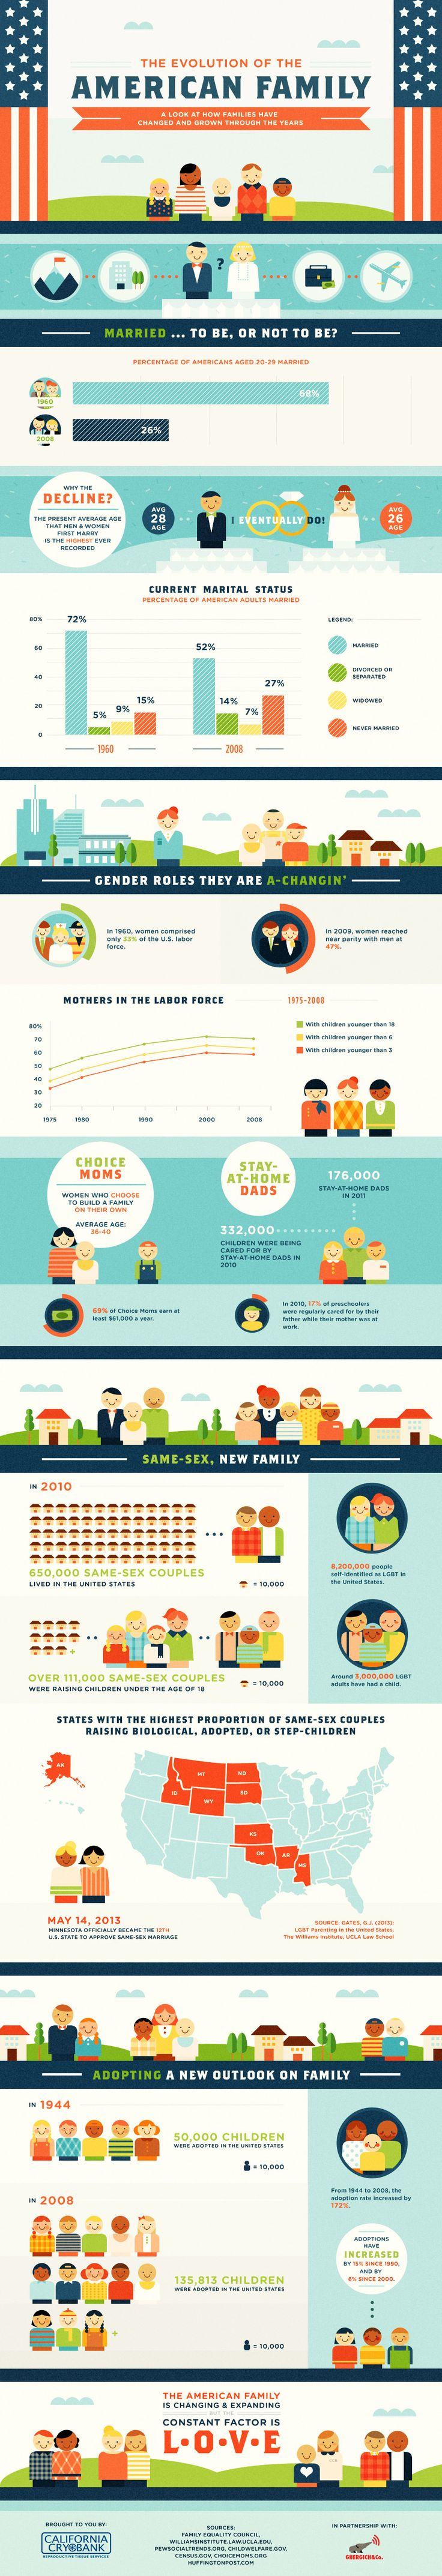 The structure of American families has constantly been changing as society grows and shifts. See what has changed in the past several decades, and how